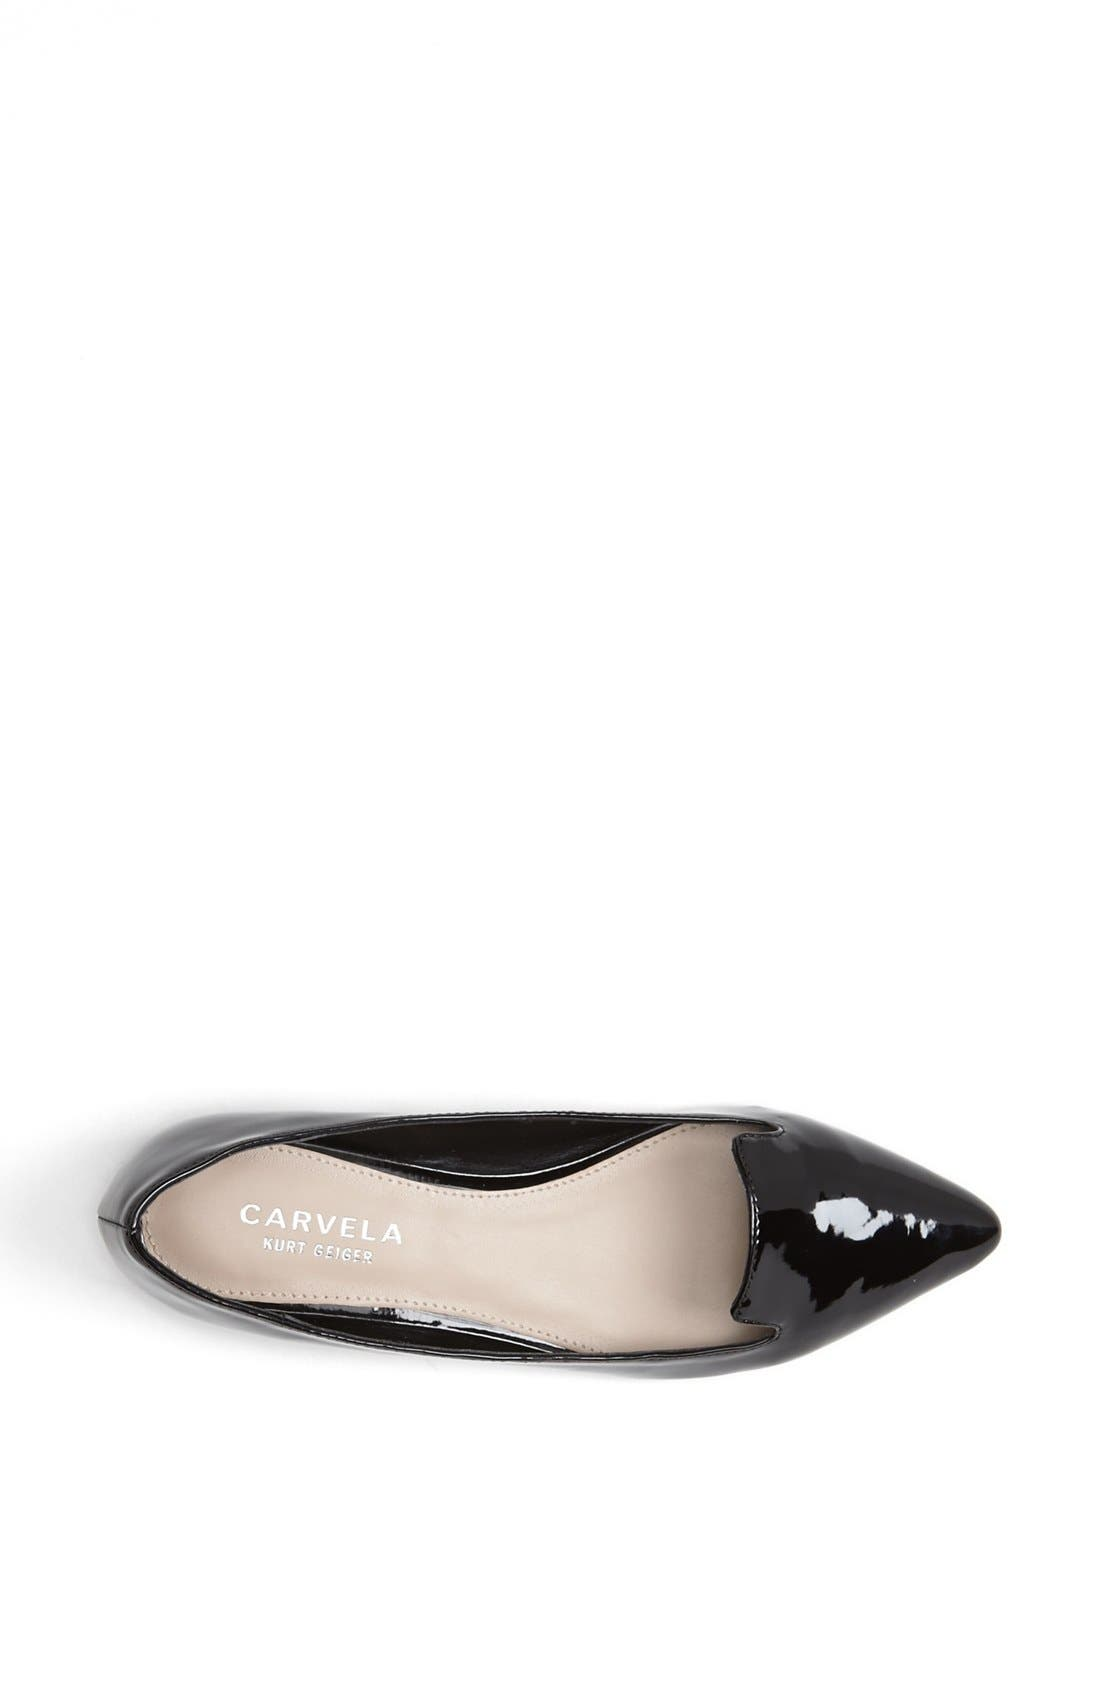 Alternate Image 3  - Carvela Kurt Geiger 'Lizzie' Pointed Toe Flat